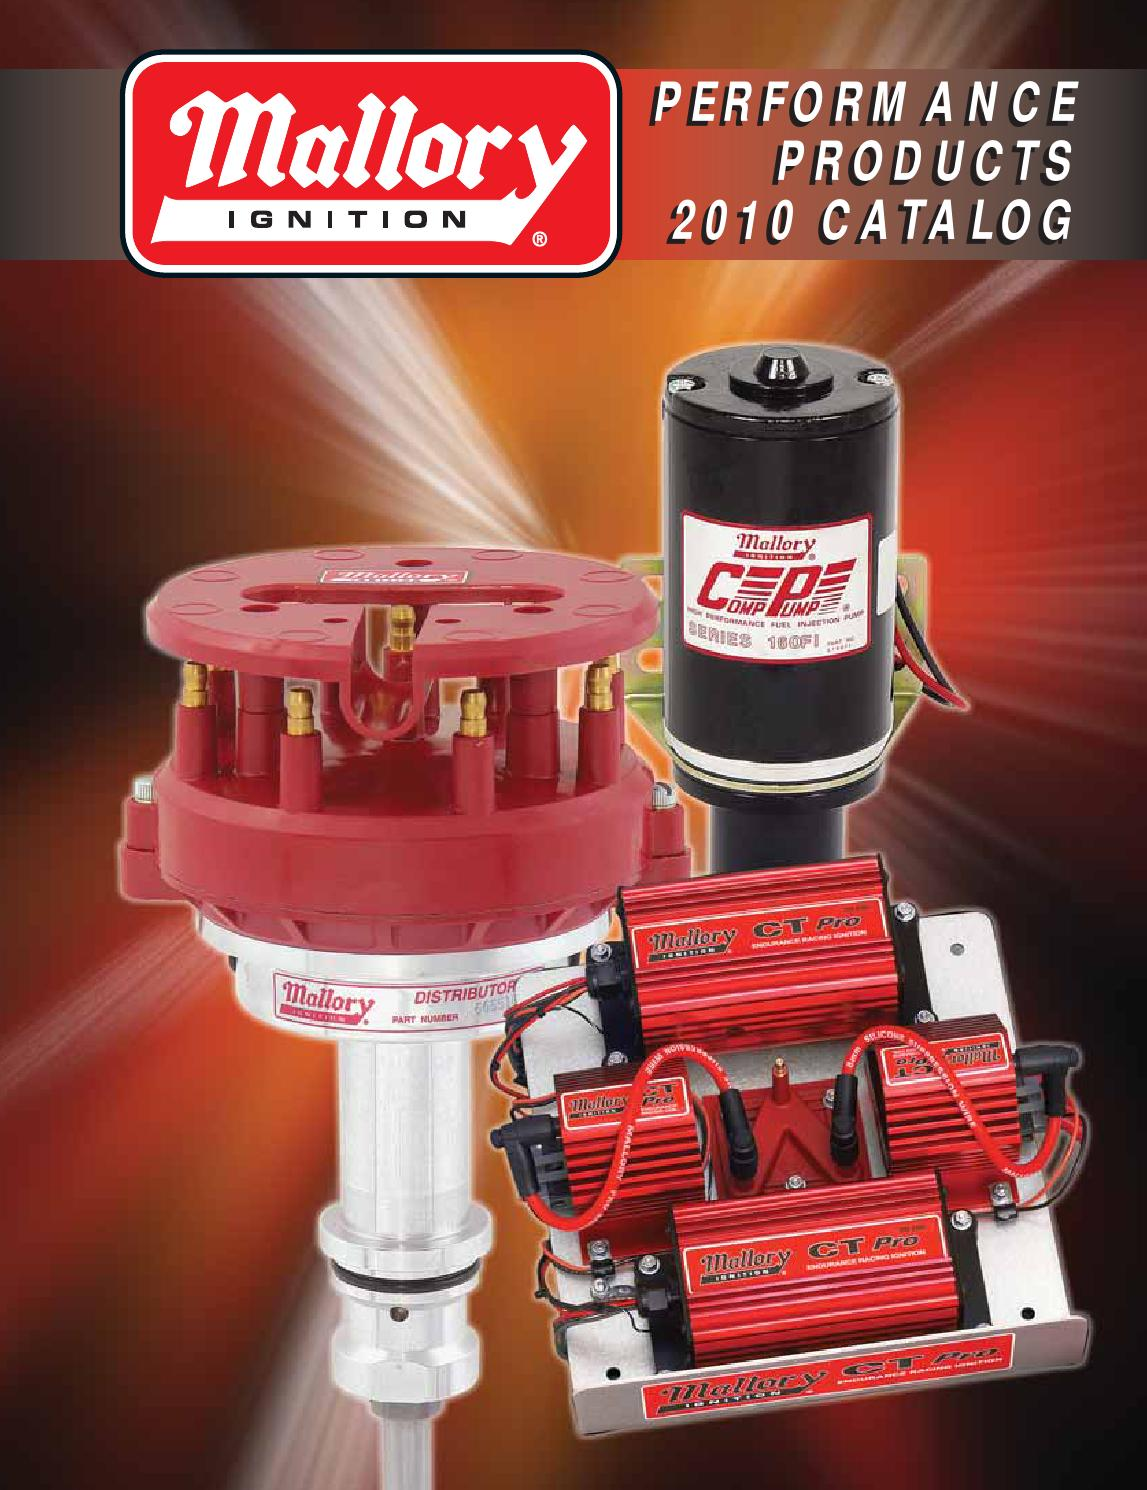 Mallory Catalog 2010 74397g By Tmeyer Inc Issuu Datsun 620 Wiring Diagram For Distributor